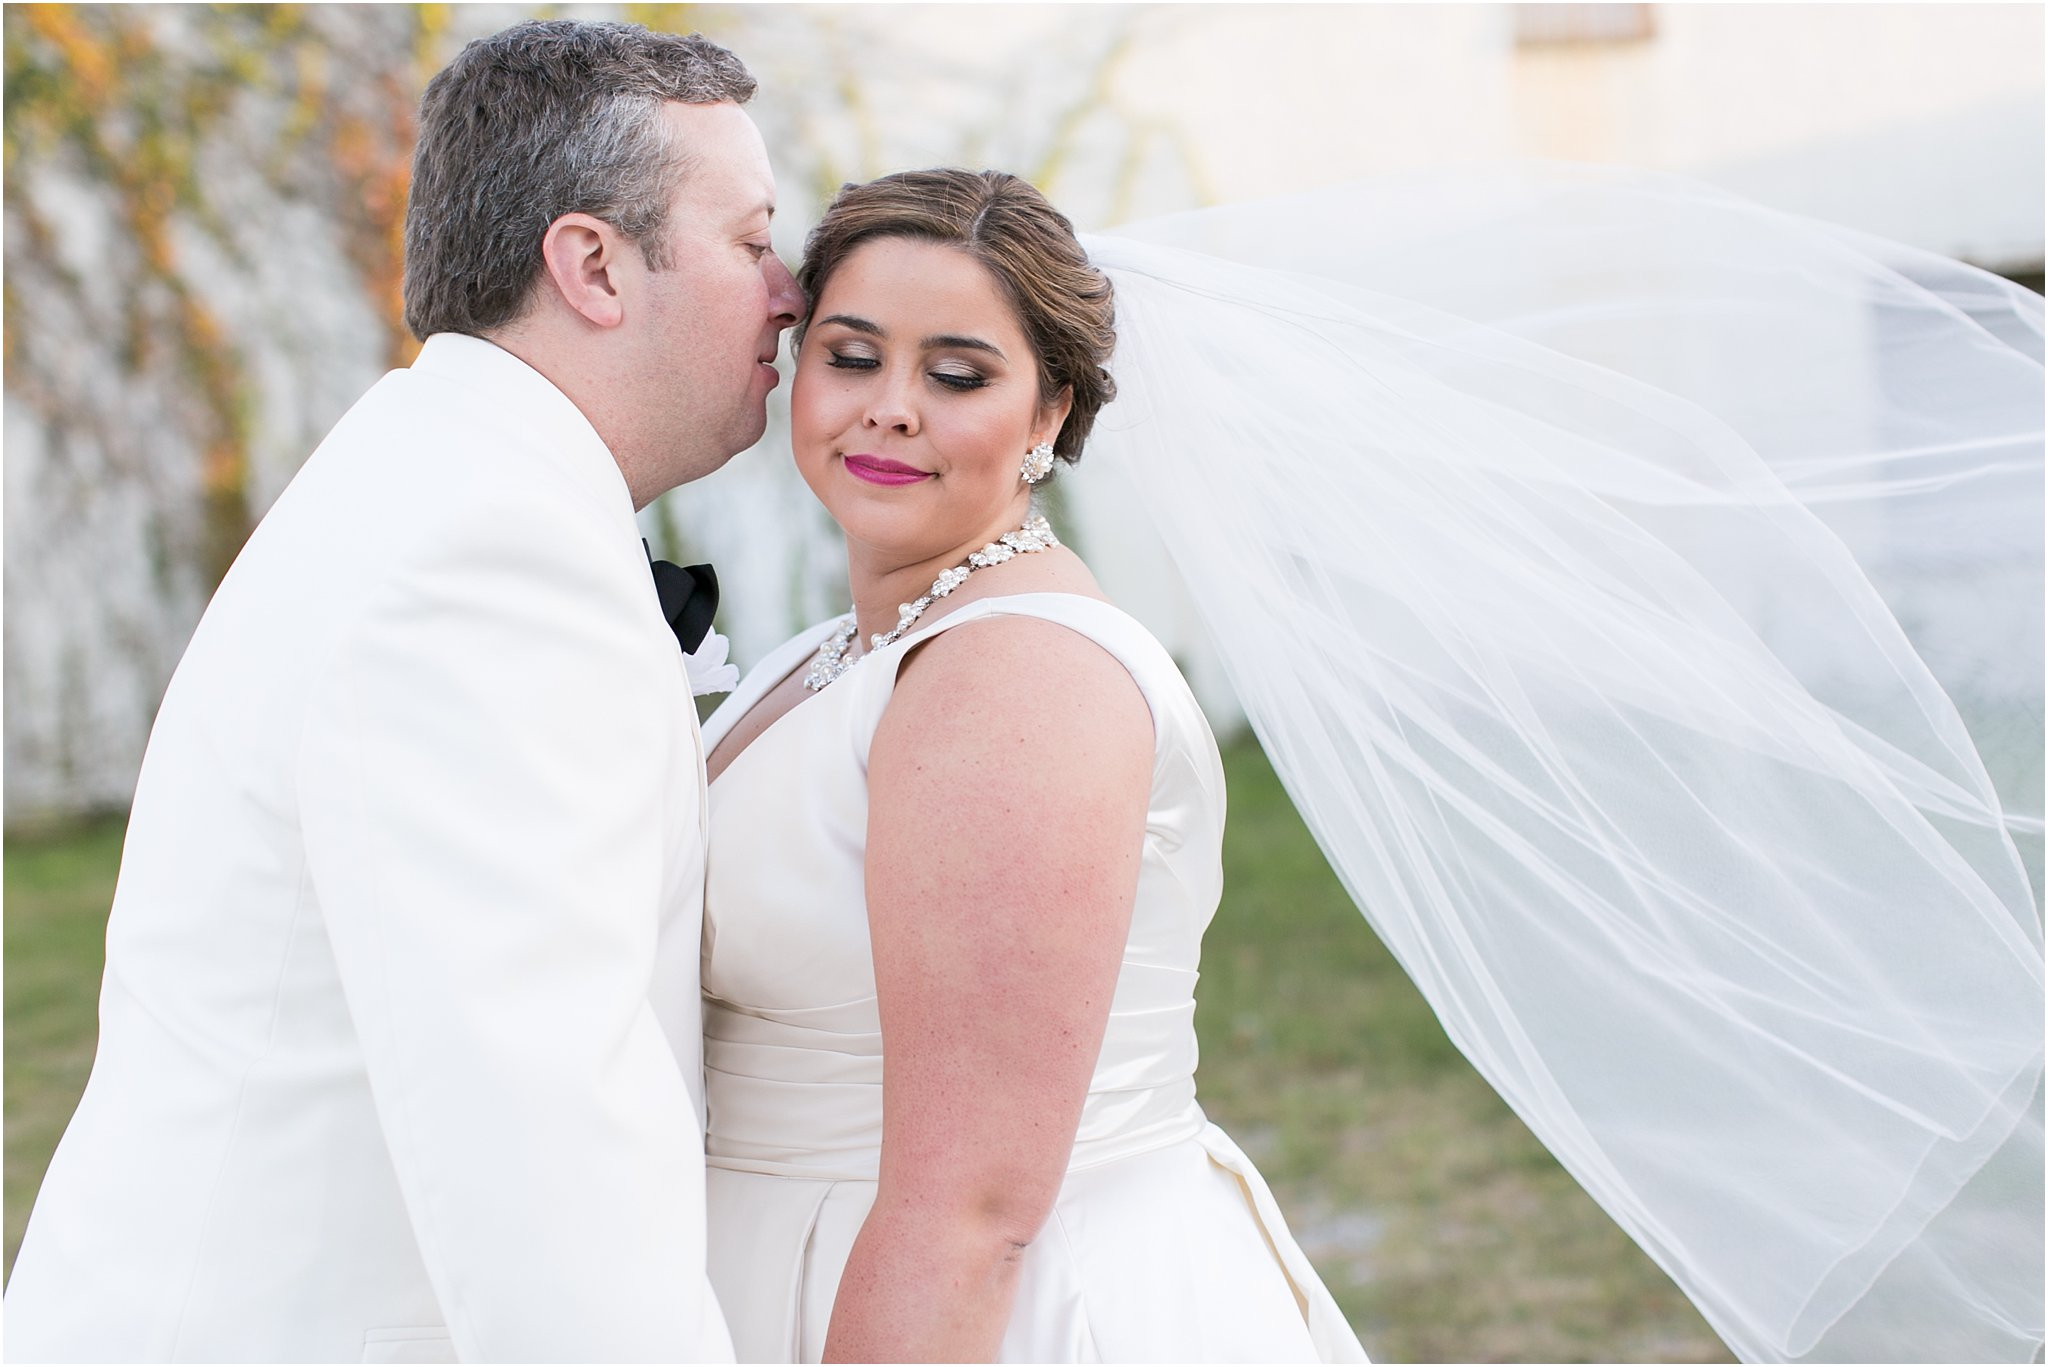 va_jessica_ryan_photography_virginia_wedding_norfolk_harrison_opera_house_norfolk_arts_district_portraits_3815